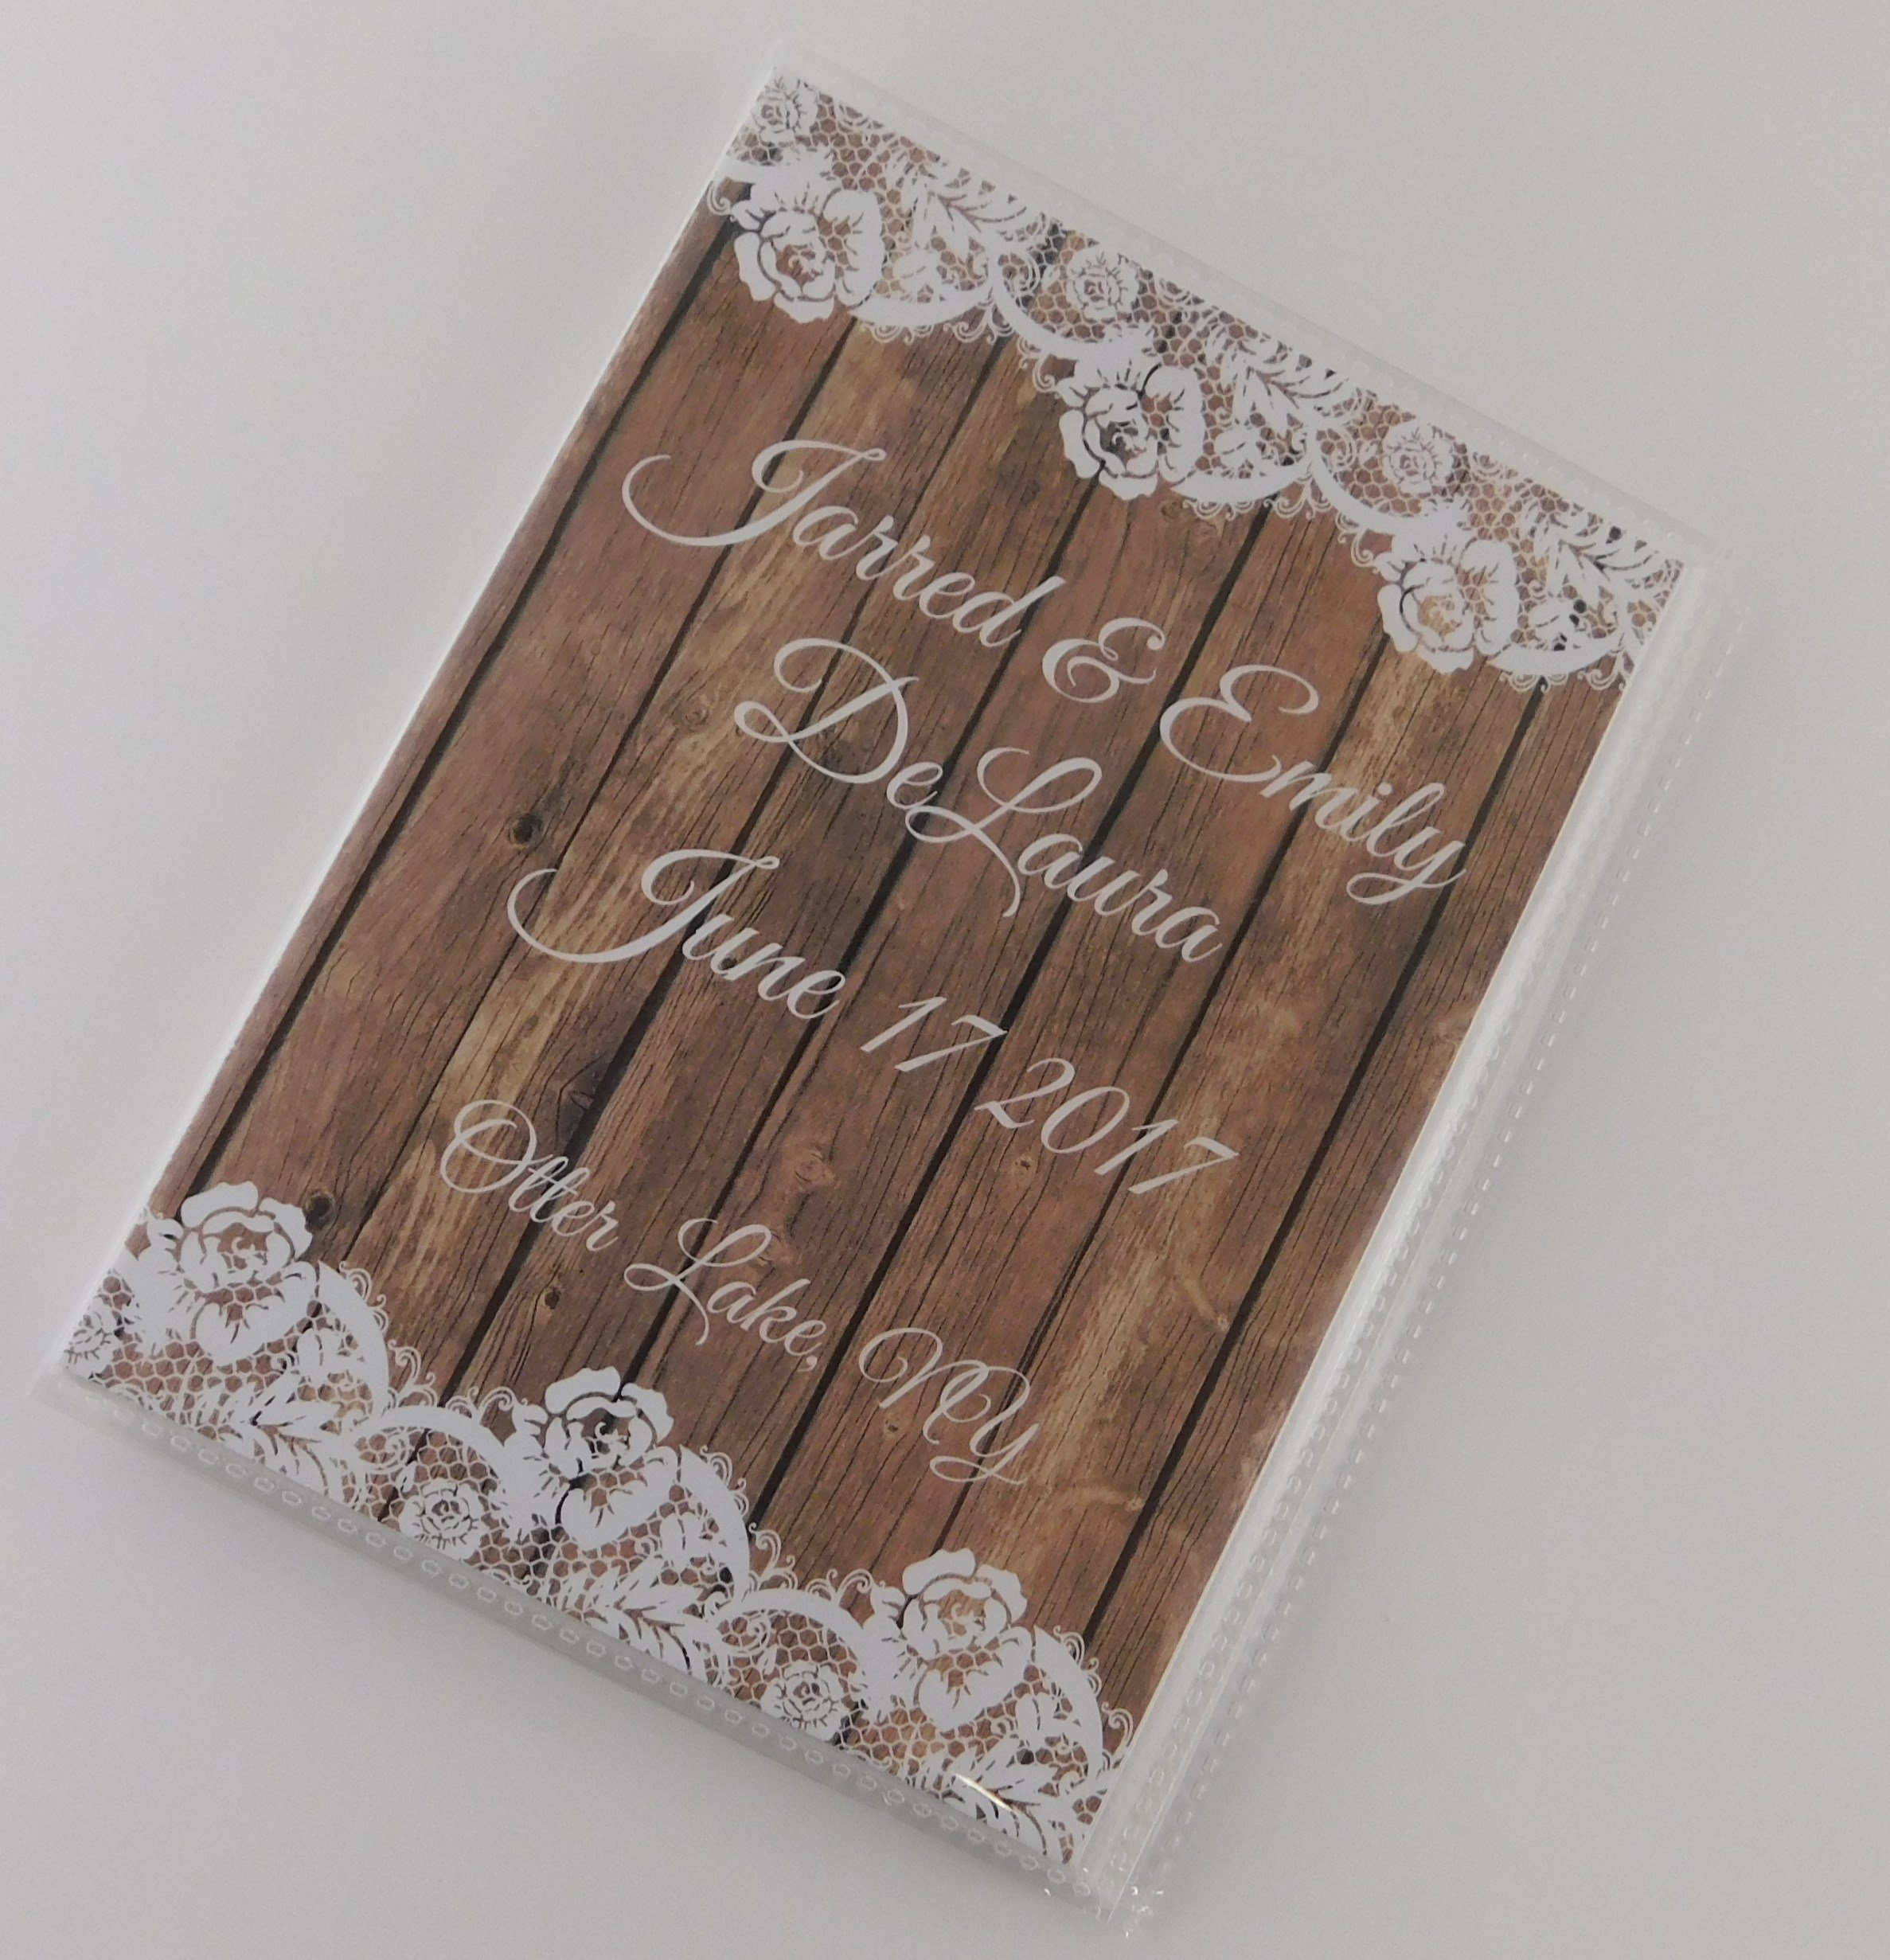 Wedding Photo Album IA#756 NOT REAL WOOD or Lace PRINTED 4x6 or 5x7 Pictures Rustic Bridal Shower Gift Engagement Anniversary